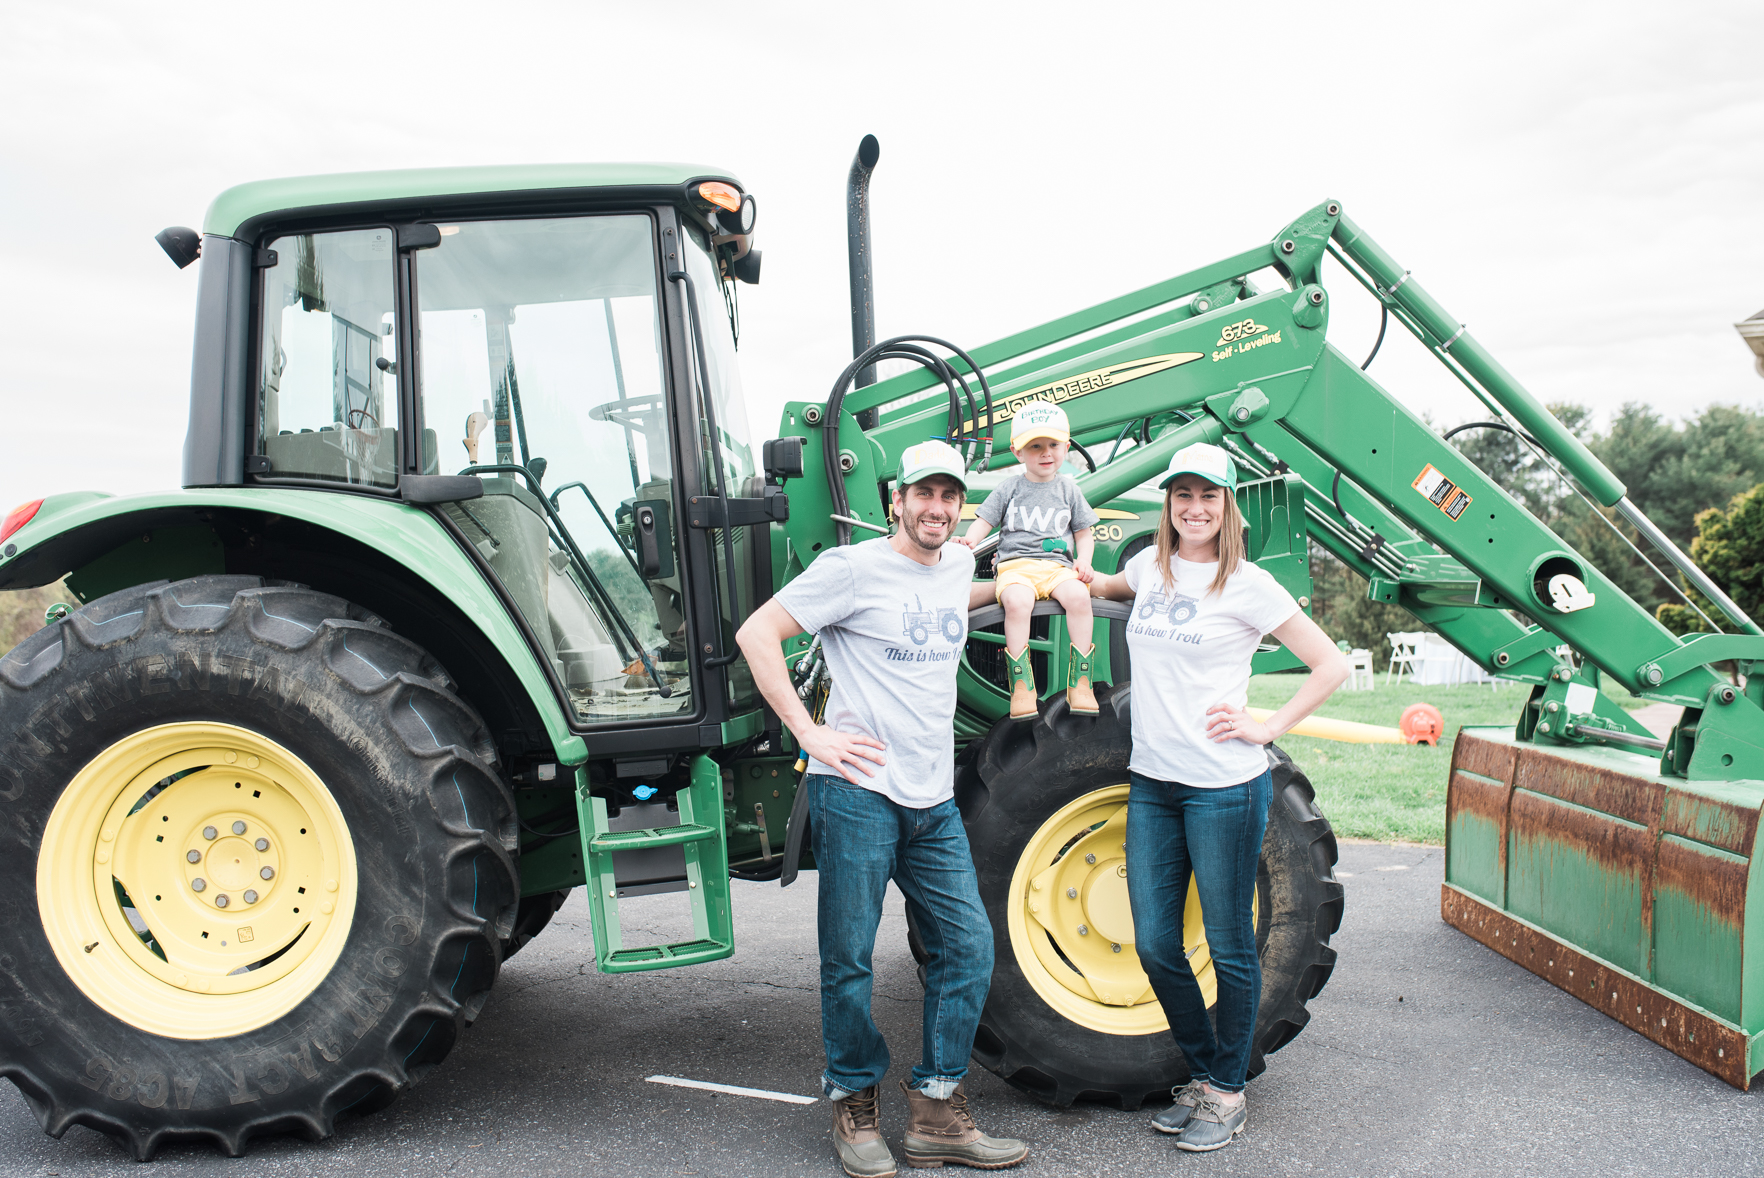 Baltimore-Maryland-harford county-photographer-family-lifestyle-tractor party-photos-by-breanna-kuhlmann-27.jpg